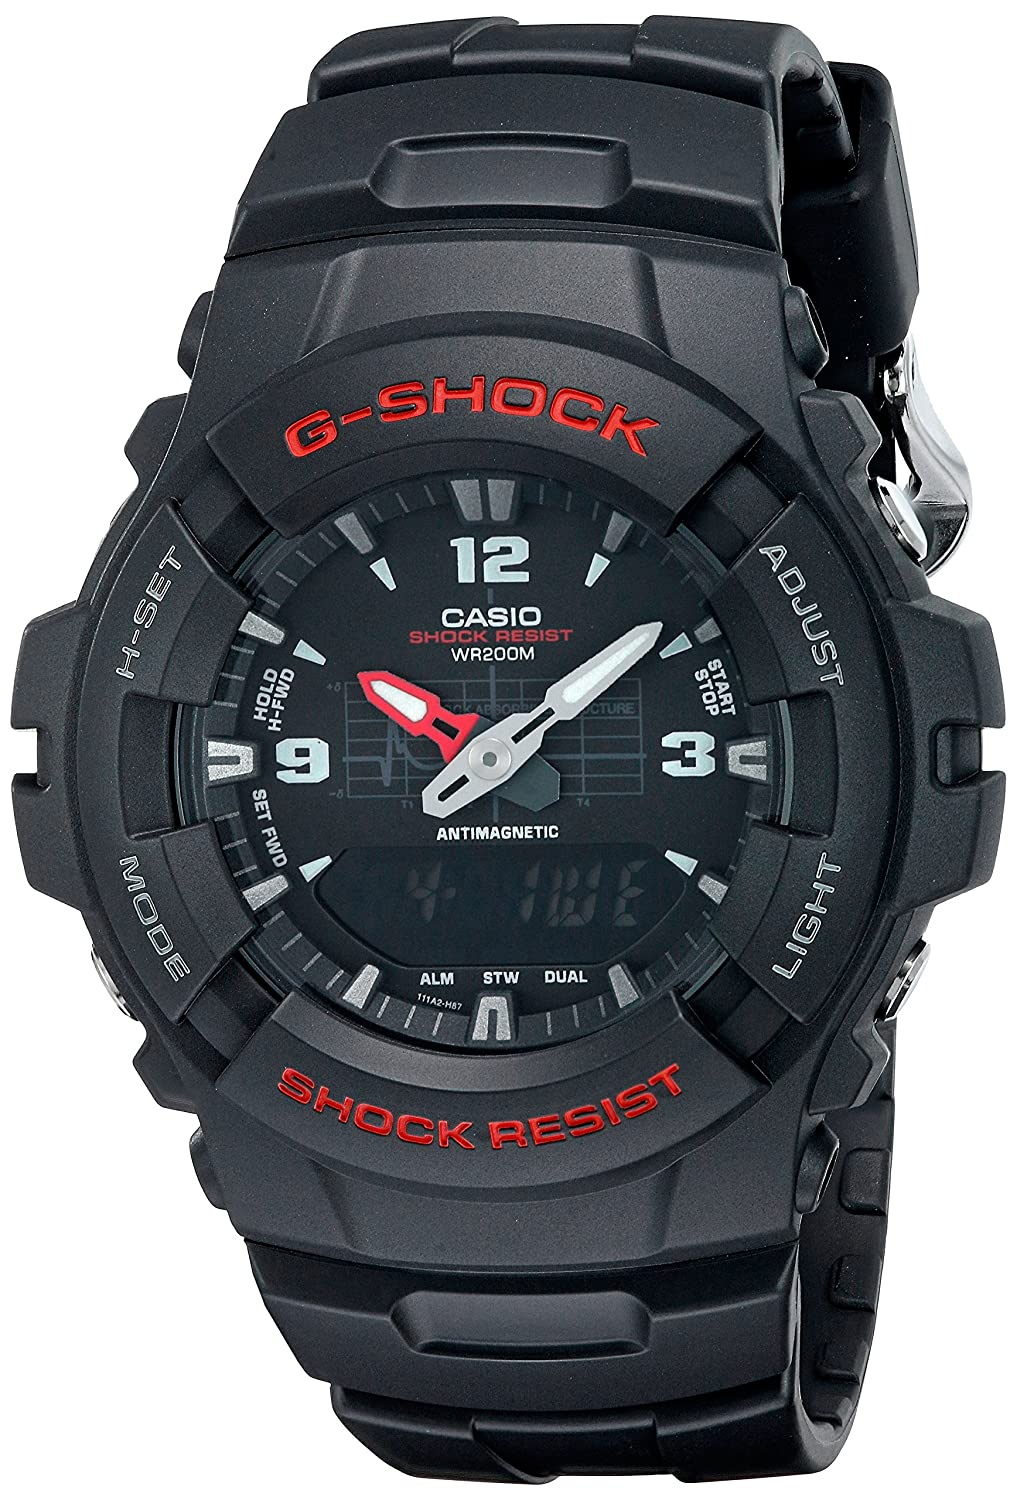 1ea516b24cda Amazon.com: Casio Men's G100-1BV G-Shock Classic Ana-Digi Watch: Casio:  Watches